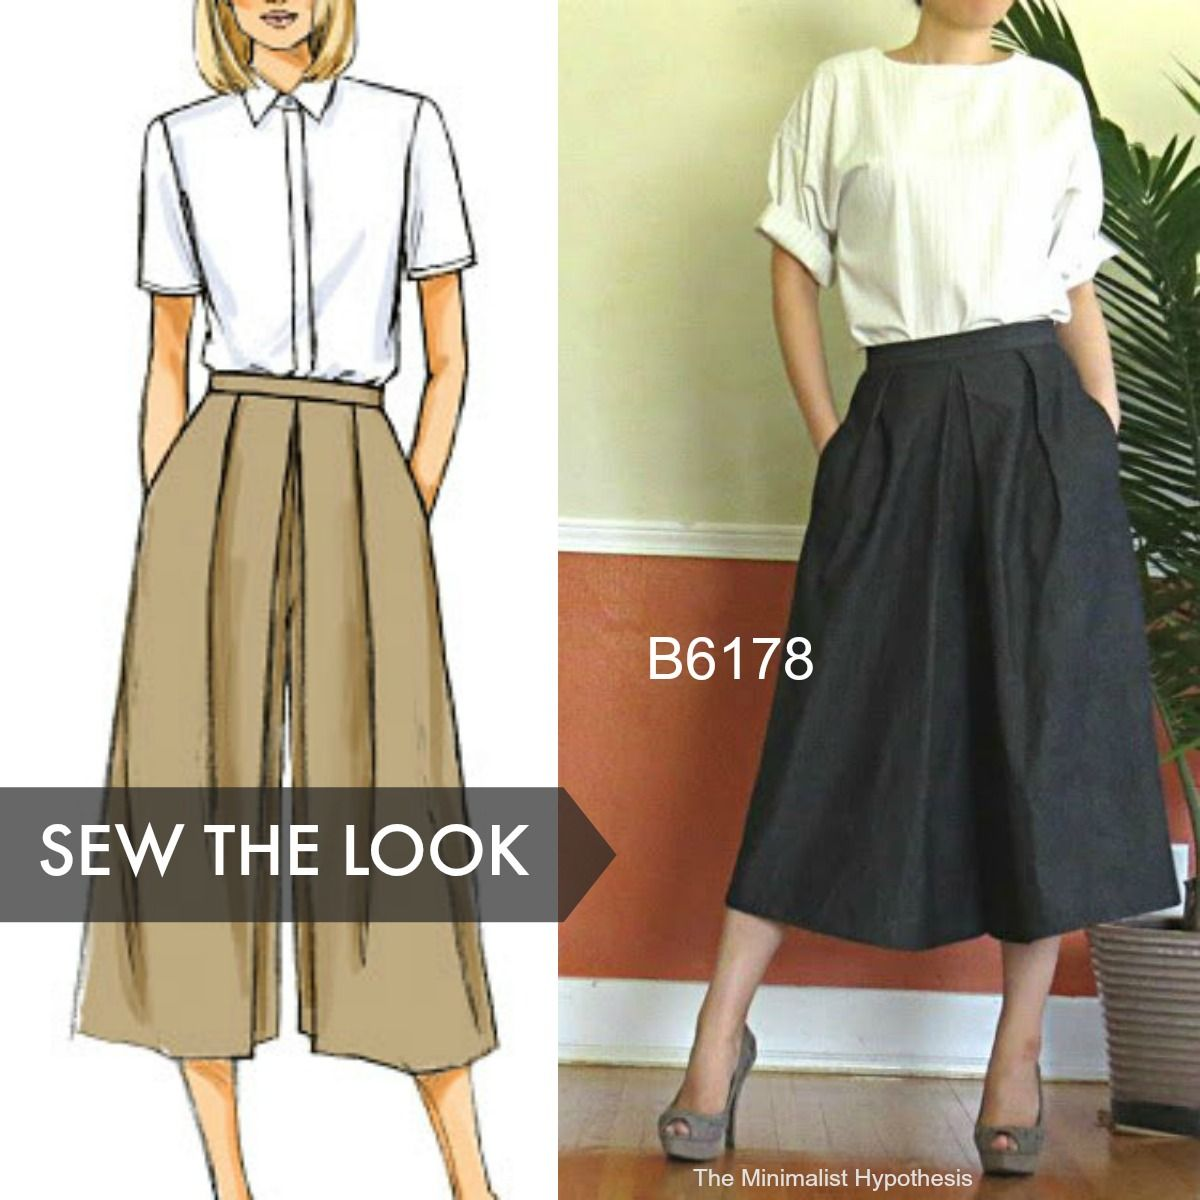 b683d74ad Sew the Look: Think of culottes as an alternative to a midi skirt.  Butterick B6178 culottes pattern.